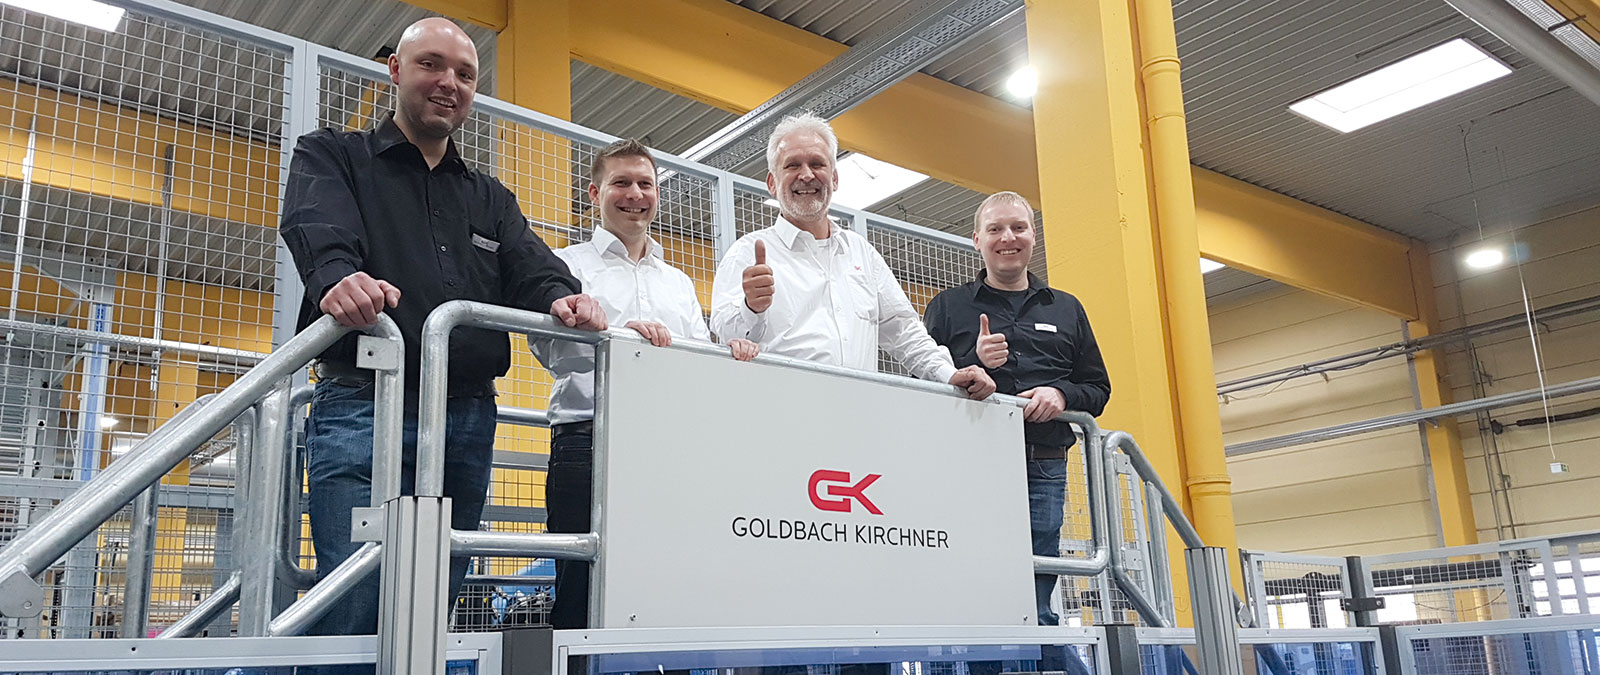 HOMAG showcase: Industry 4.0 in Dessau at Goldbach Kirchner